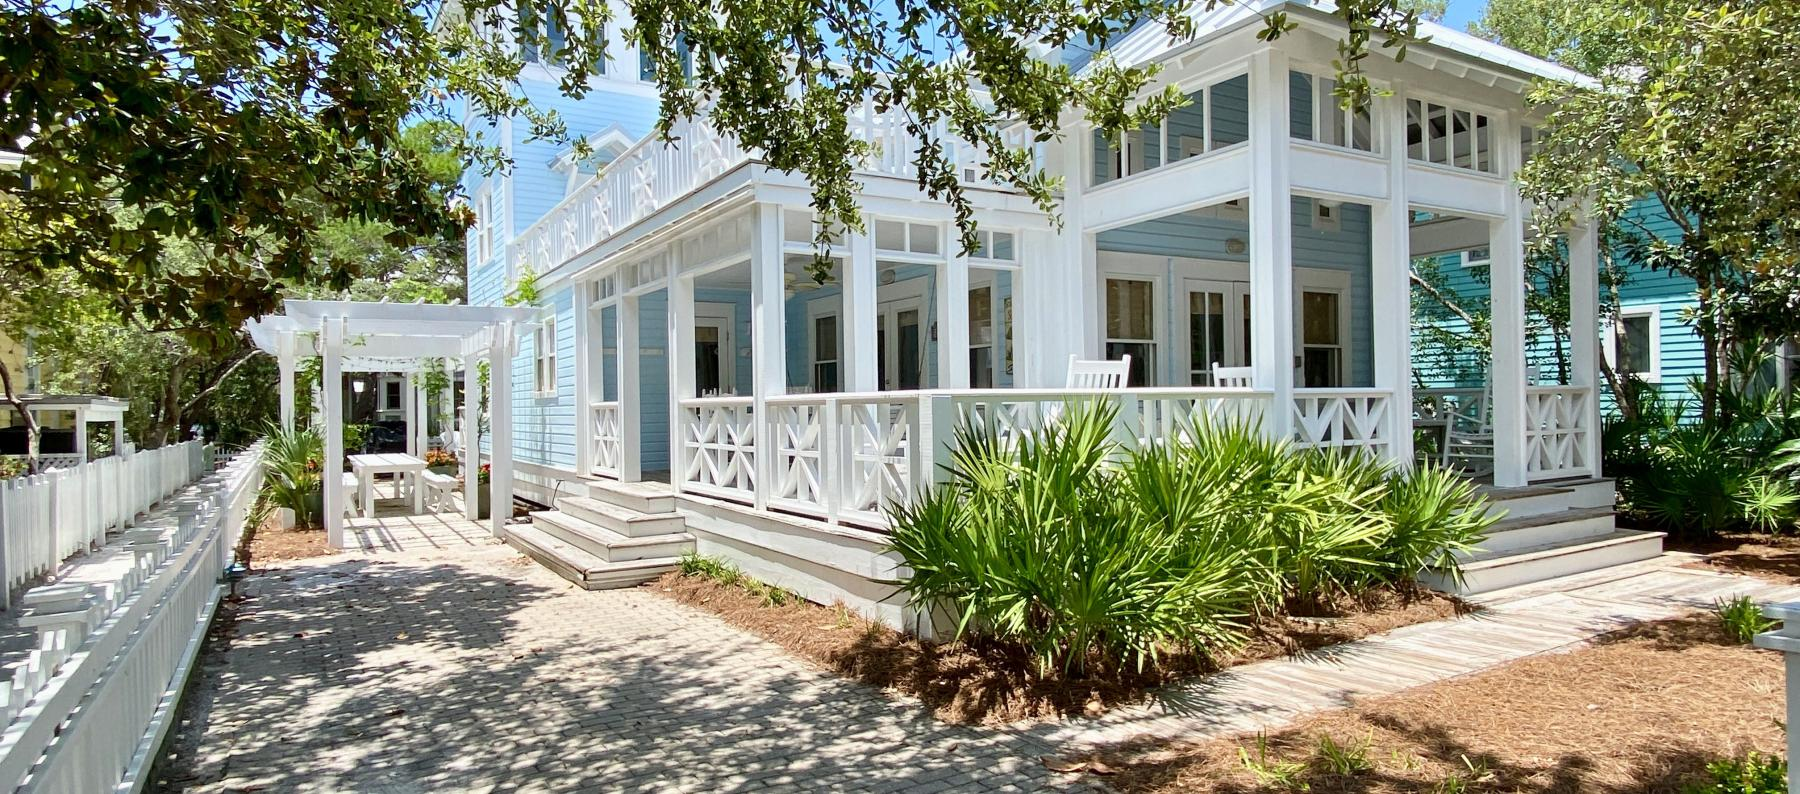 Seaside FL - Changes In Attitude Cottage